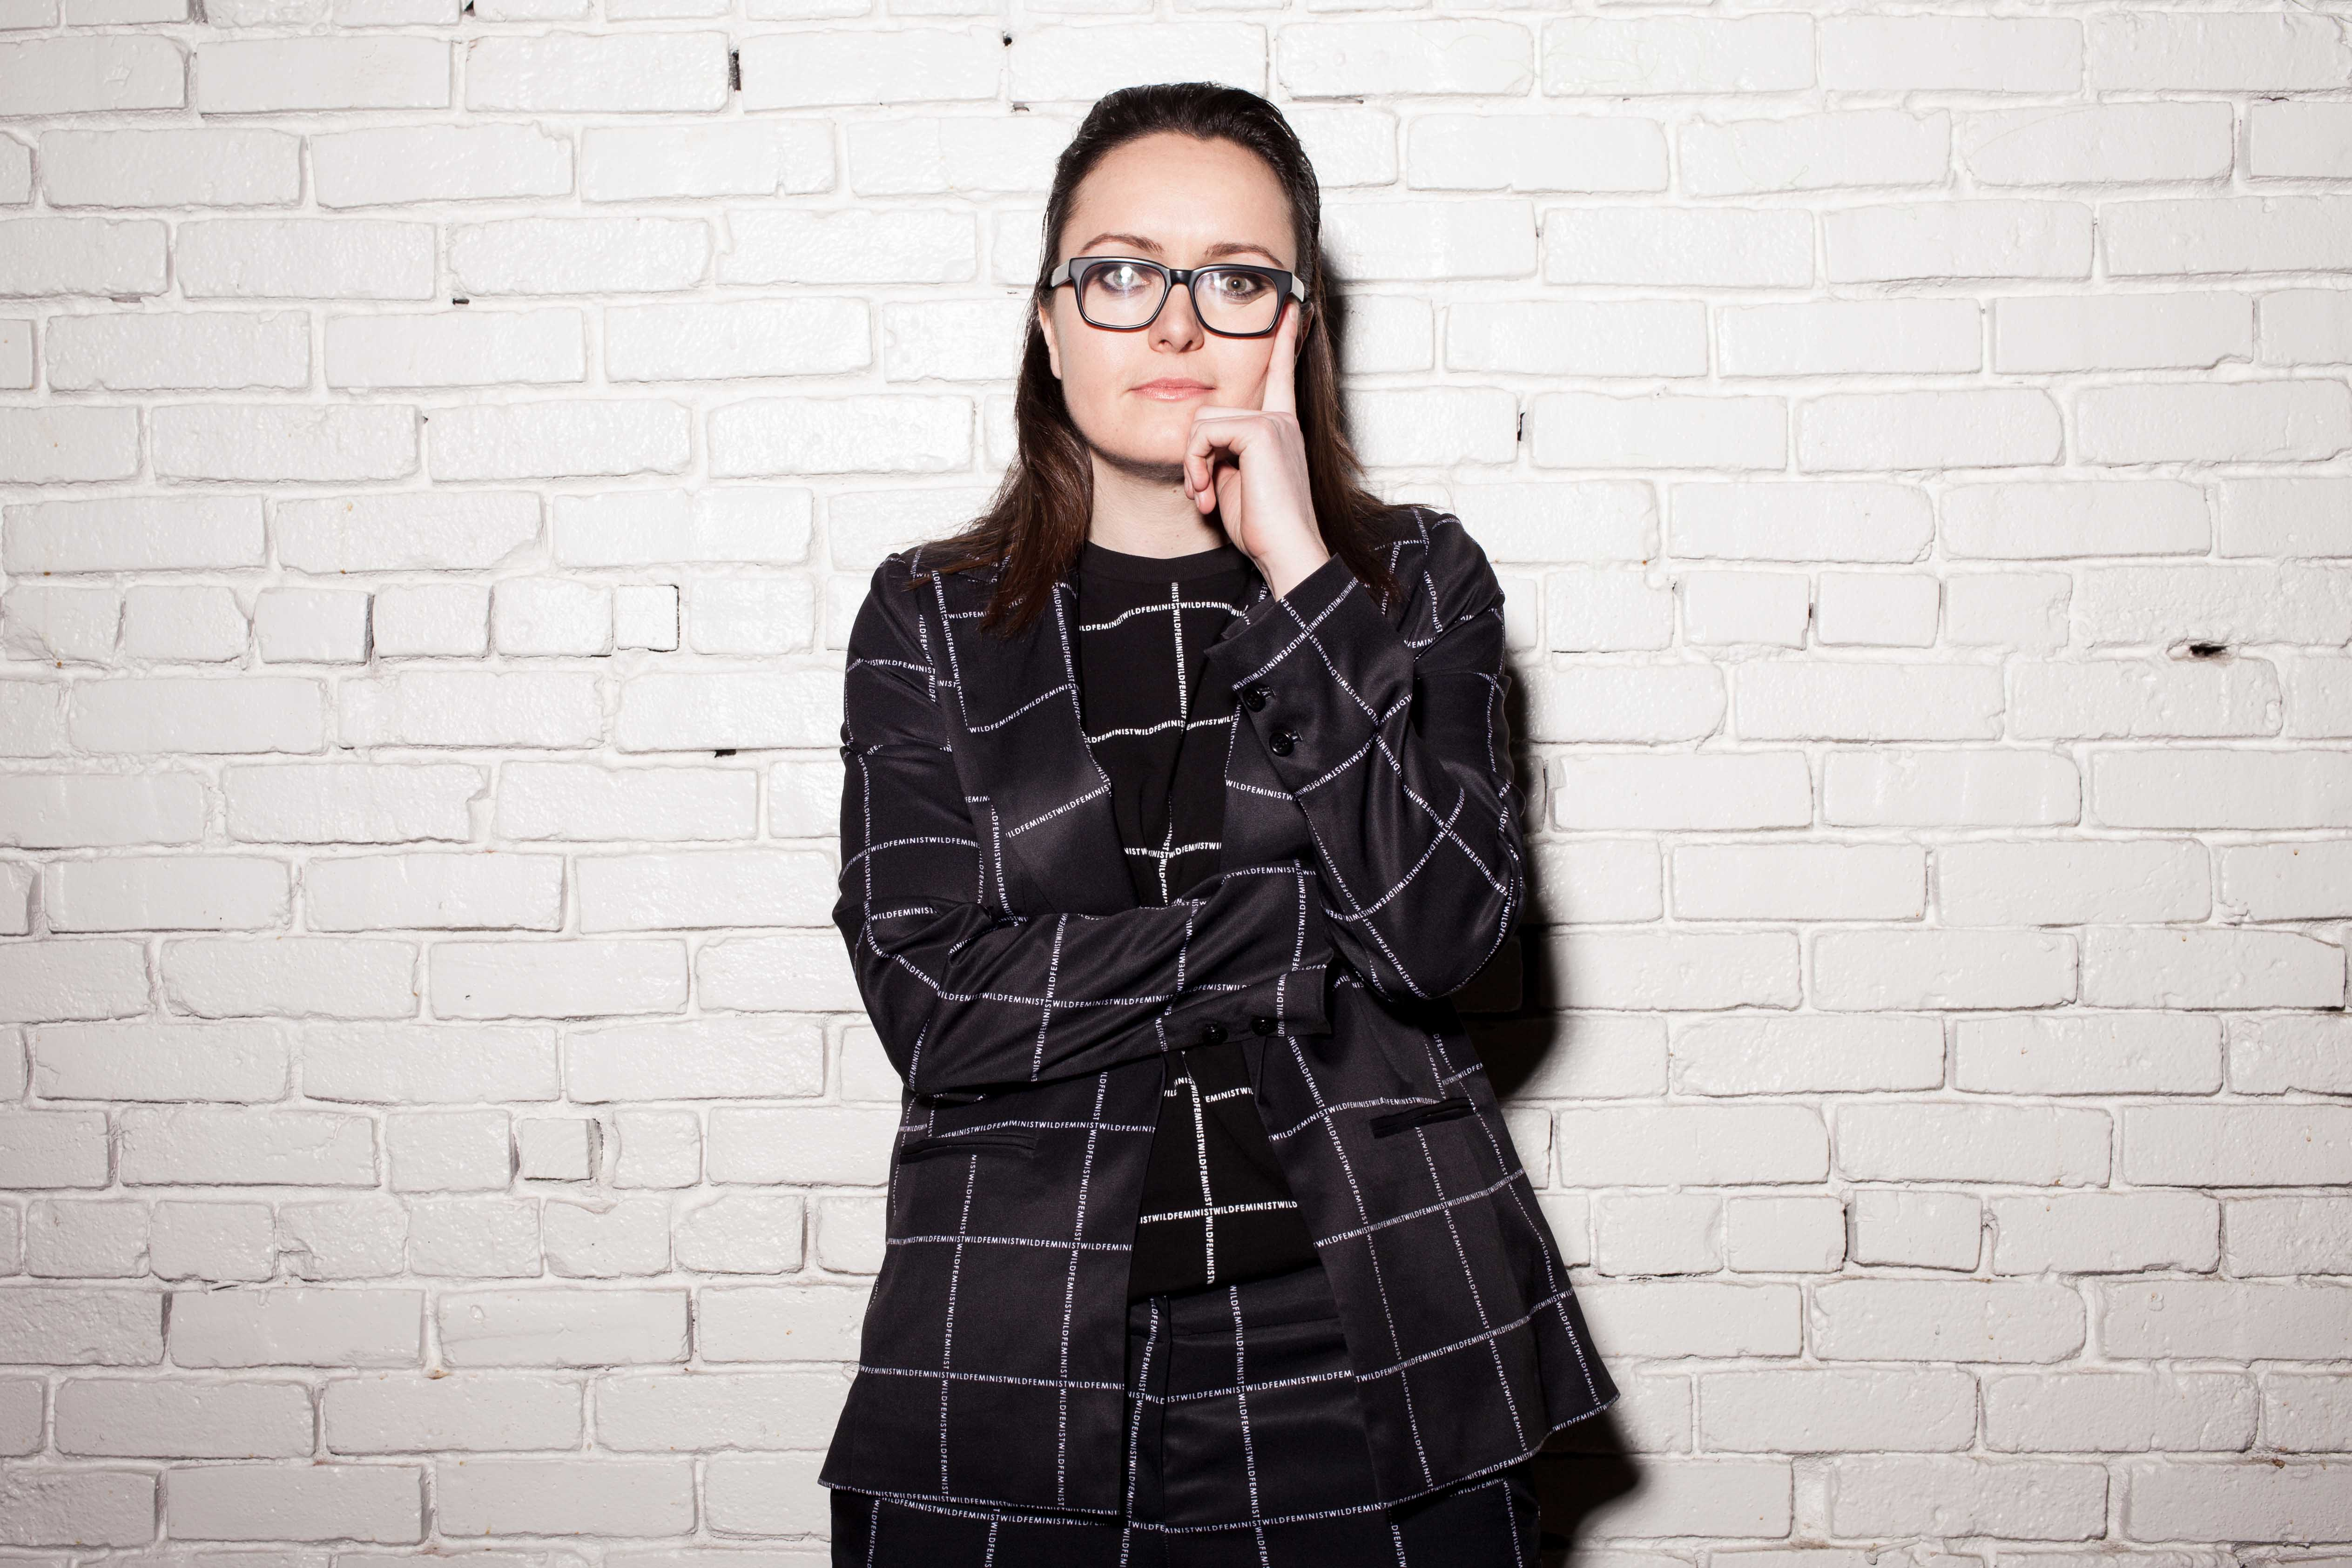 Wildfang ceo Emma Mcilroy